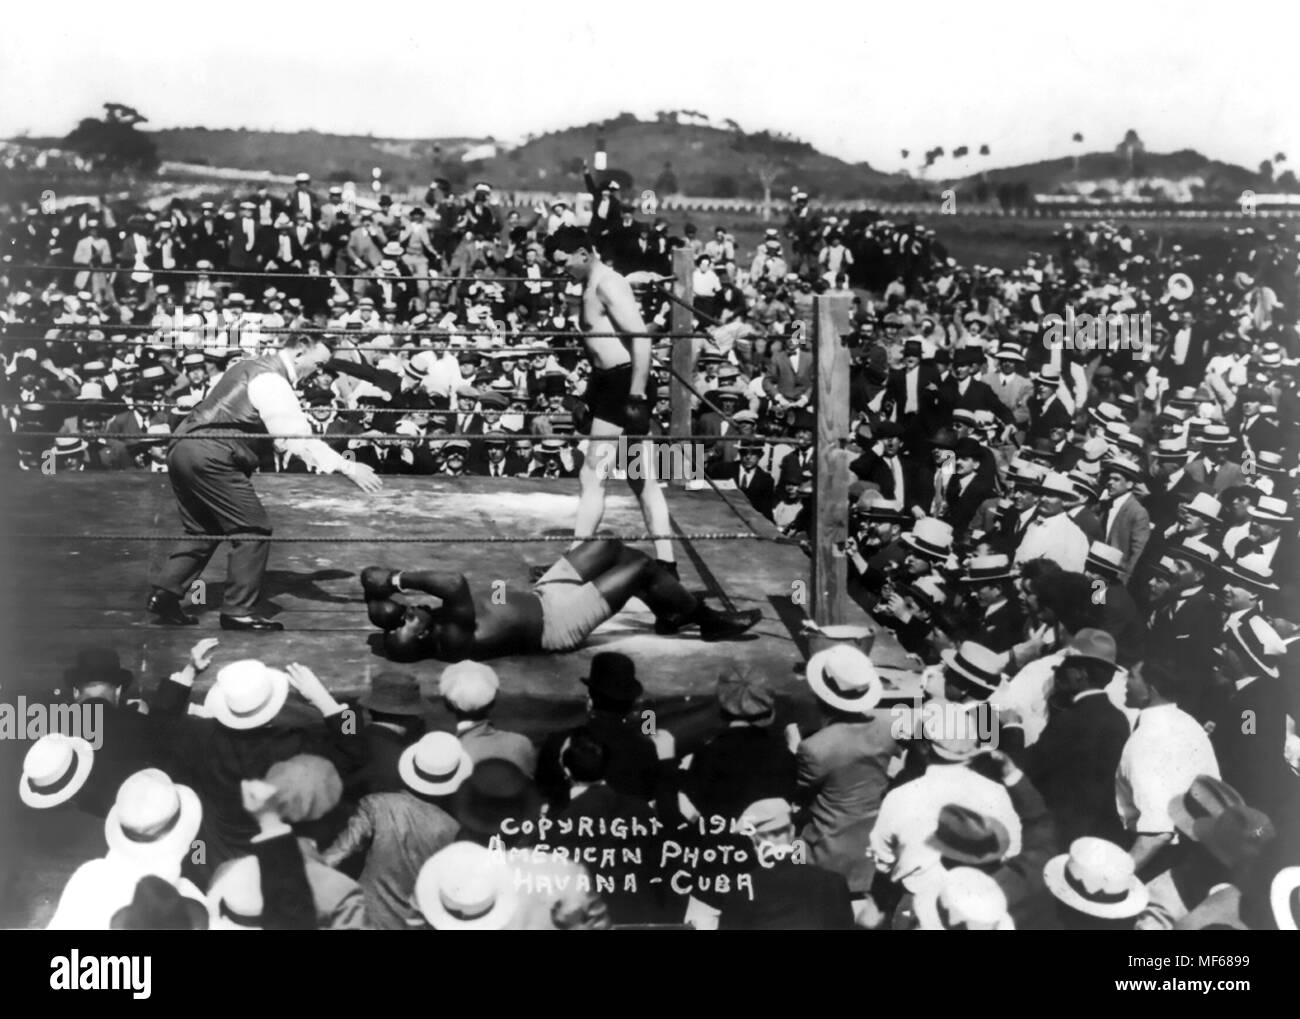 JACK JOHNSON (1878-1946) American heavyweight boxer is defeated by Jess Willard at the Oriental Park Racetrack in Havana on 5 April 1915 - Stock Image